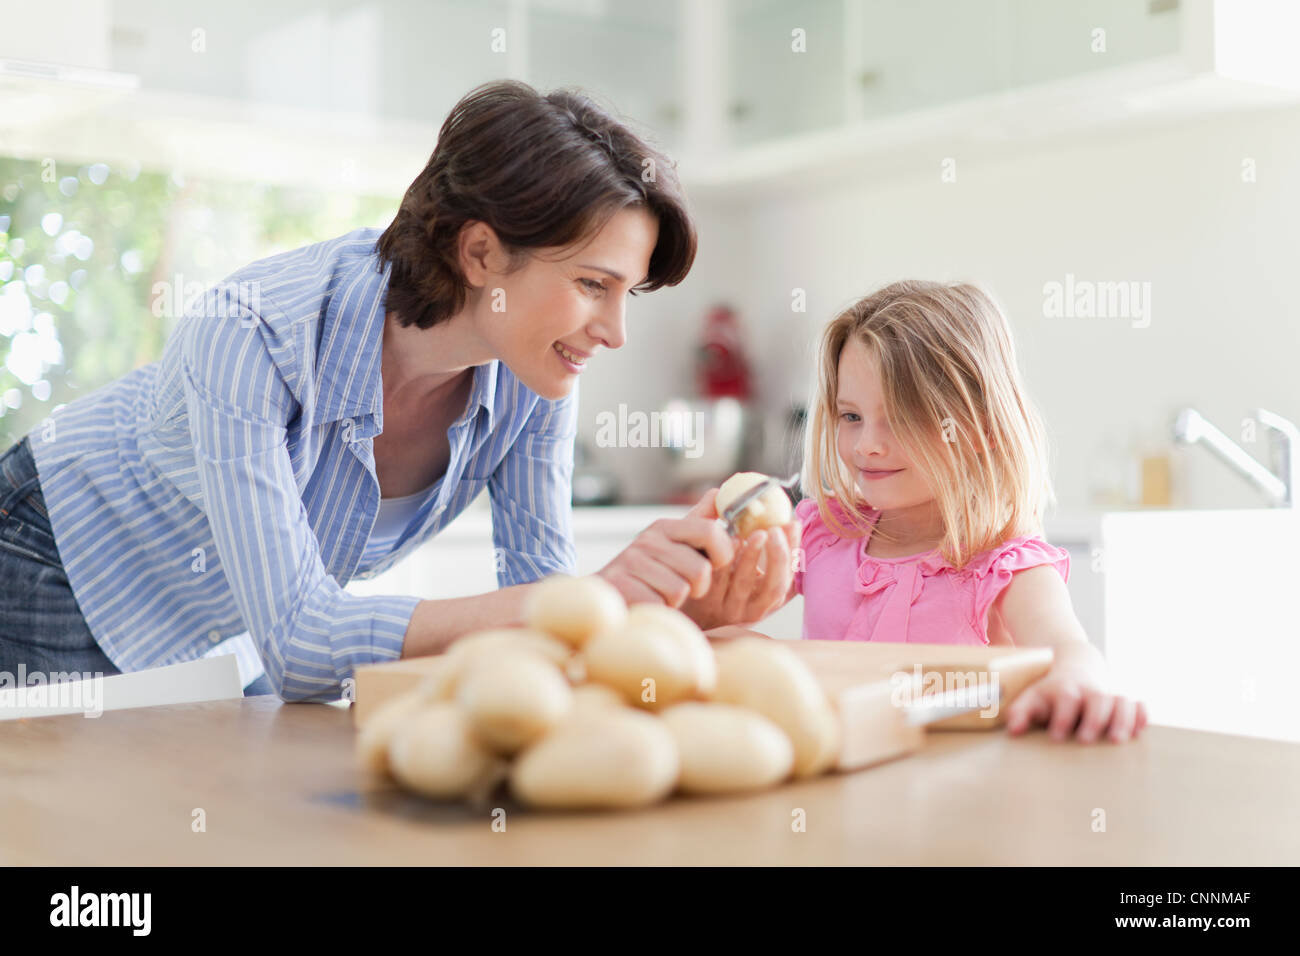 Mother helping daughter peel potatoes - Stock Image